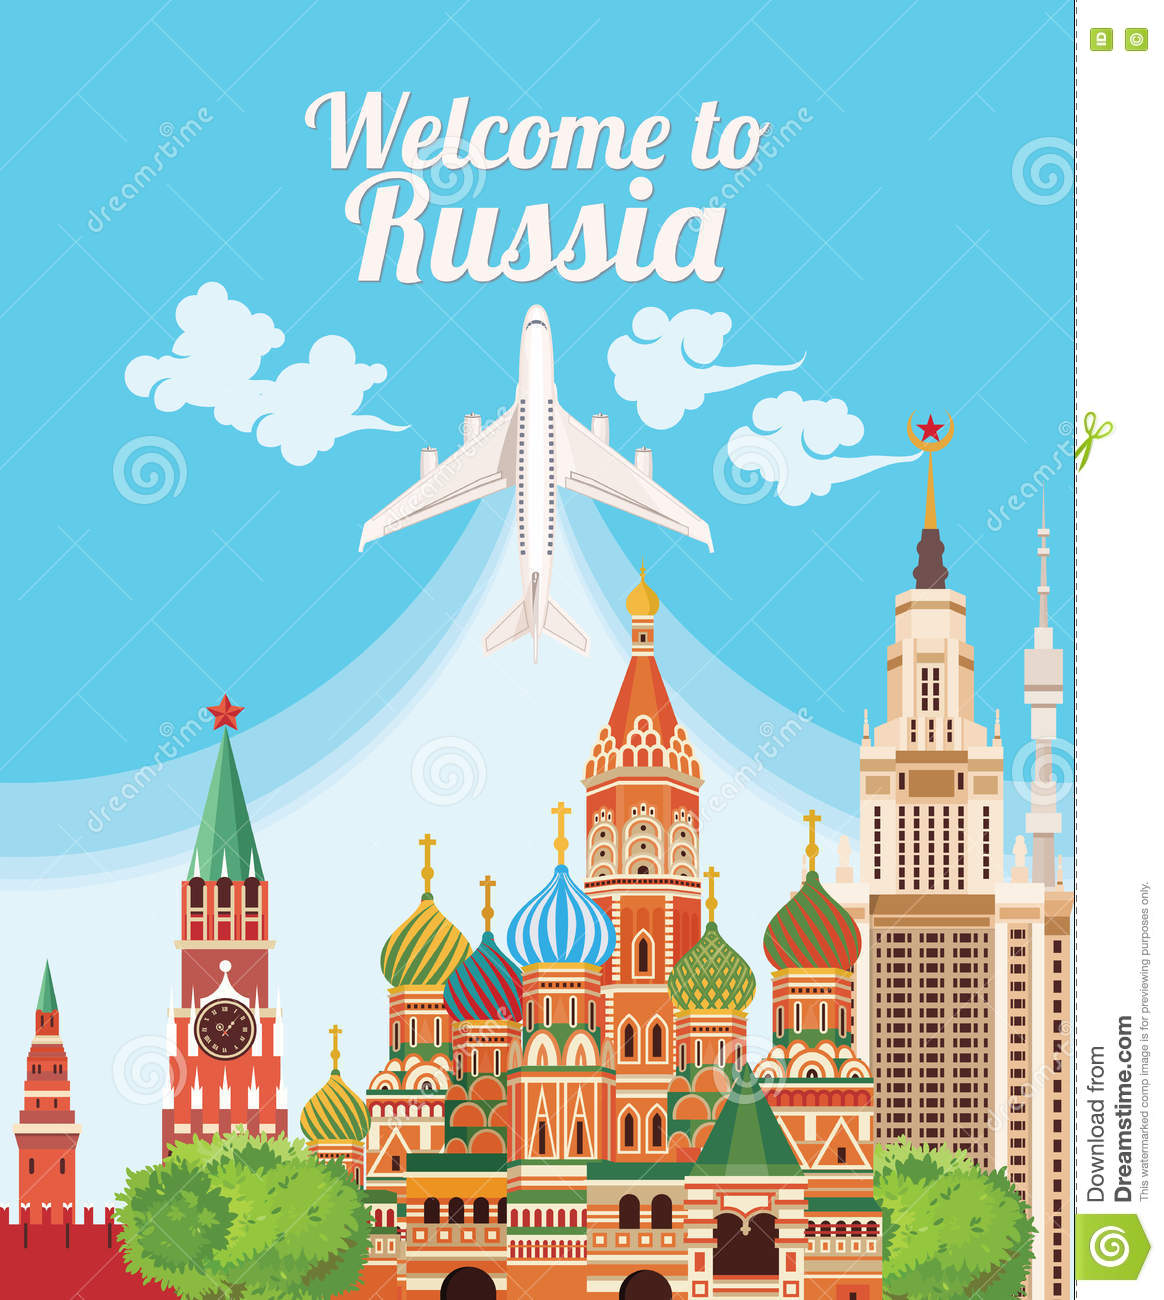 Welcome To Russia. Travel Russian Landmarks. Russian